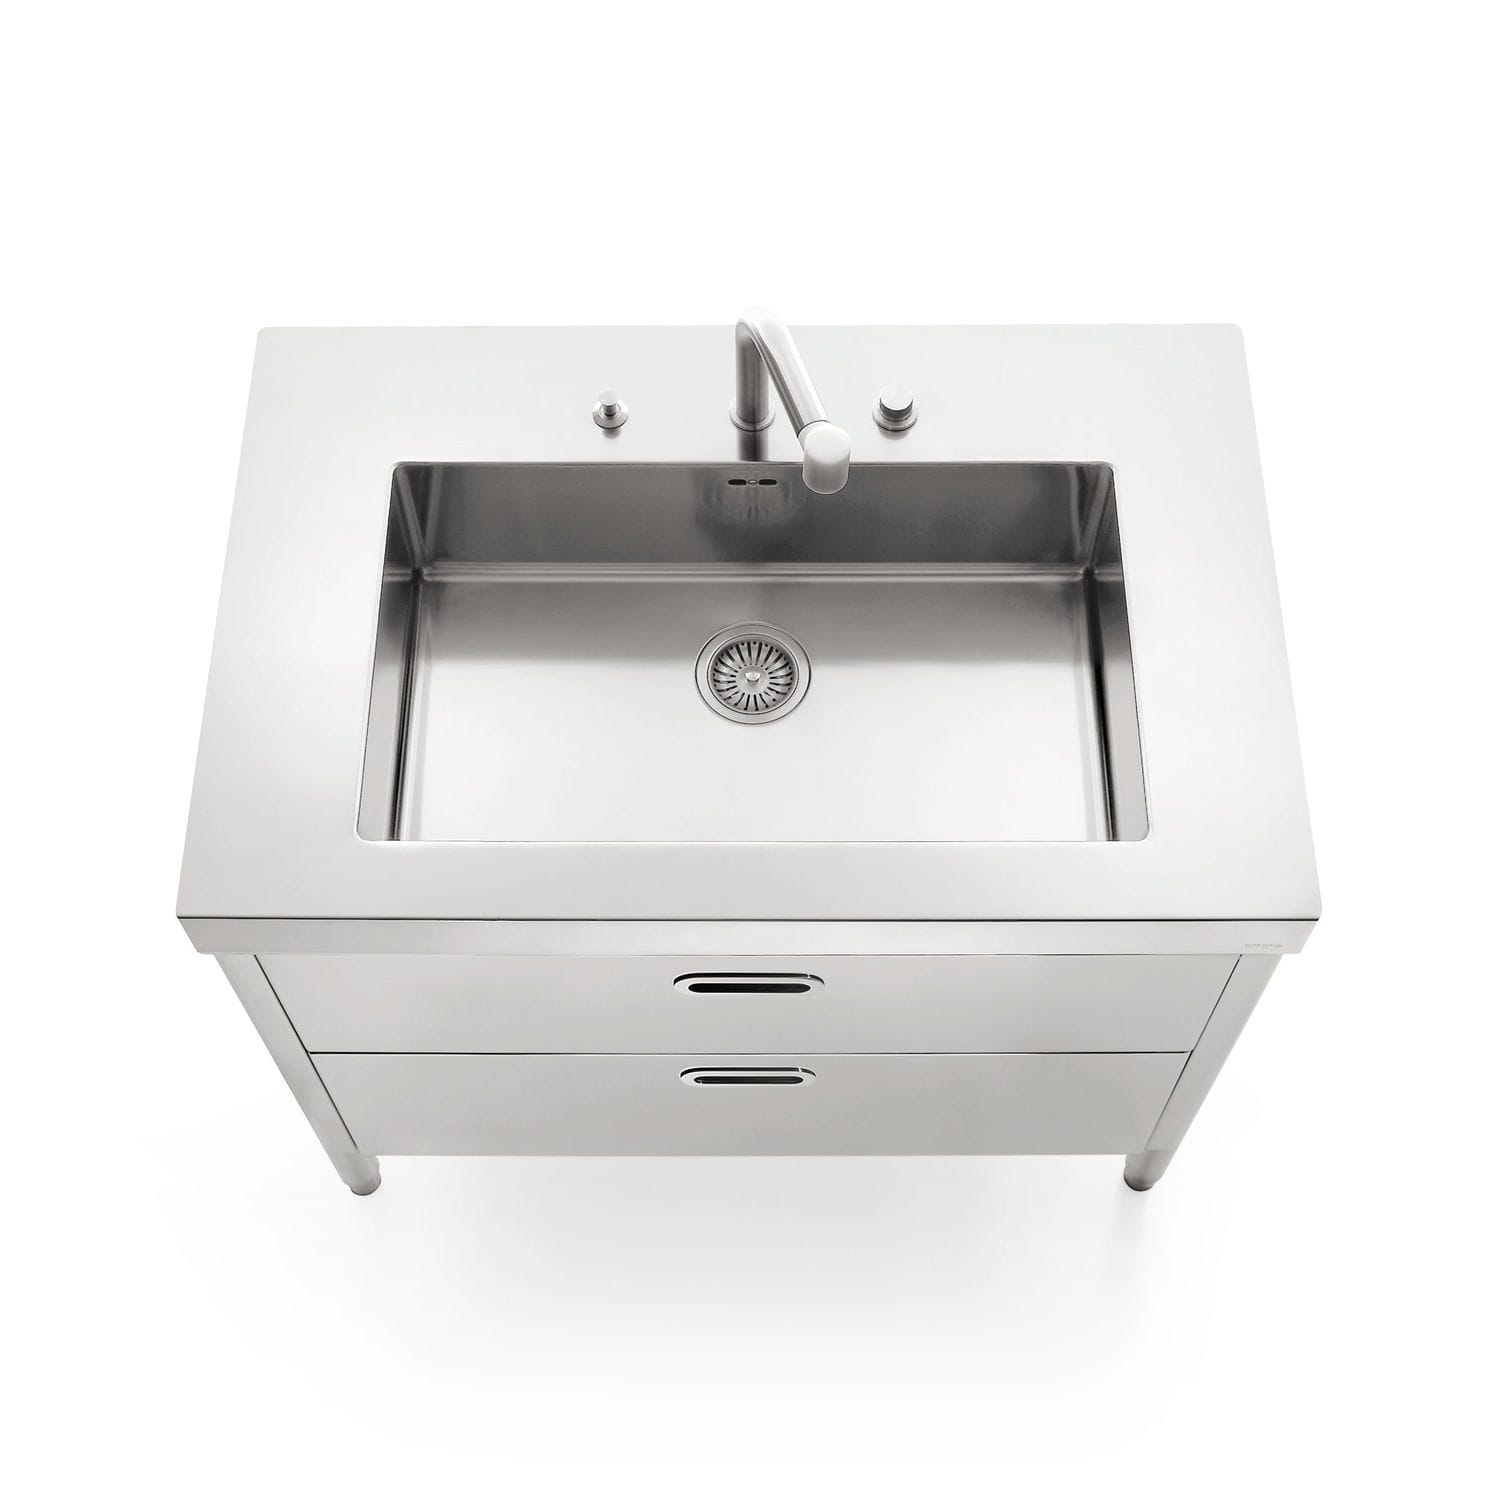 stainless kitchen sinks gray tile 不锈钢厨房水槽柜 不锈钢 用于花园 2c 100 by nico moretto alpes inox